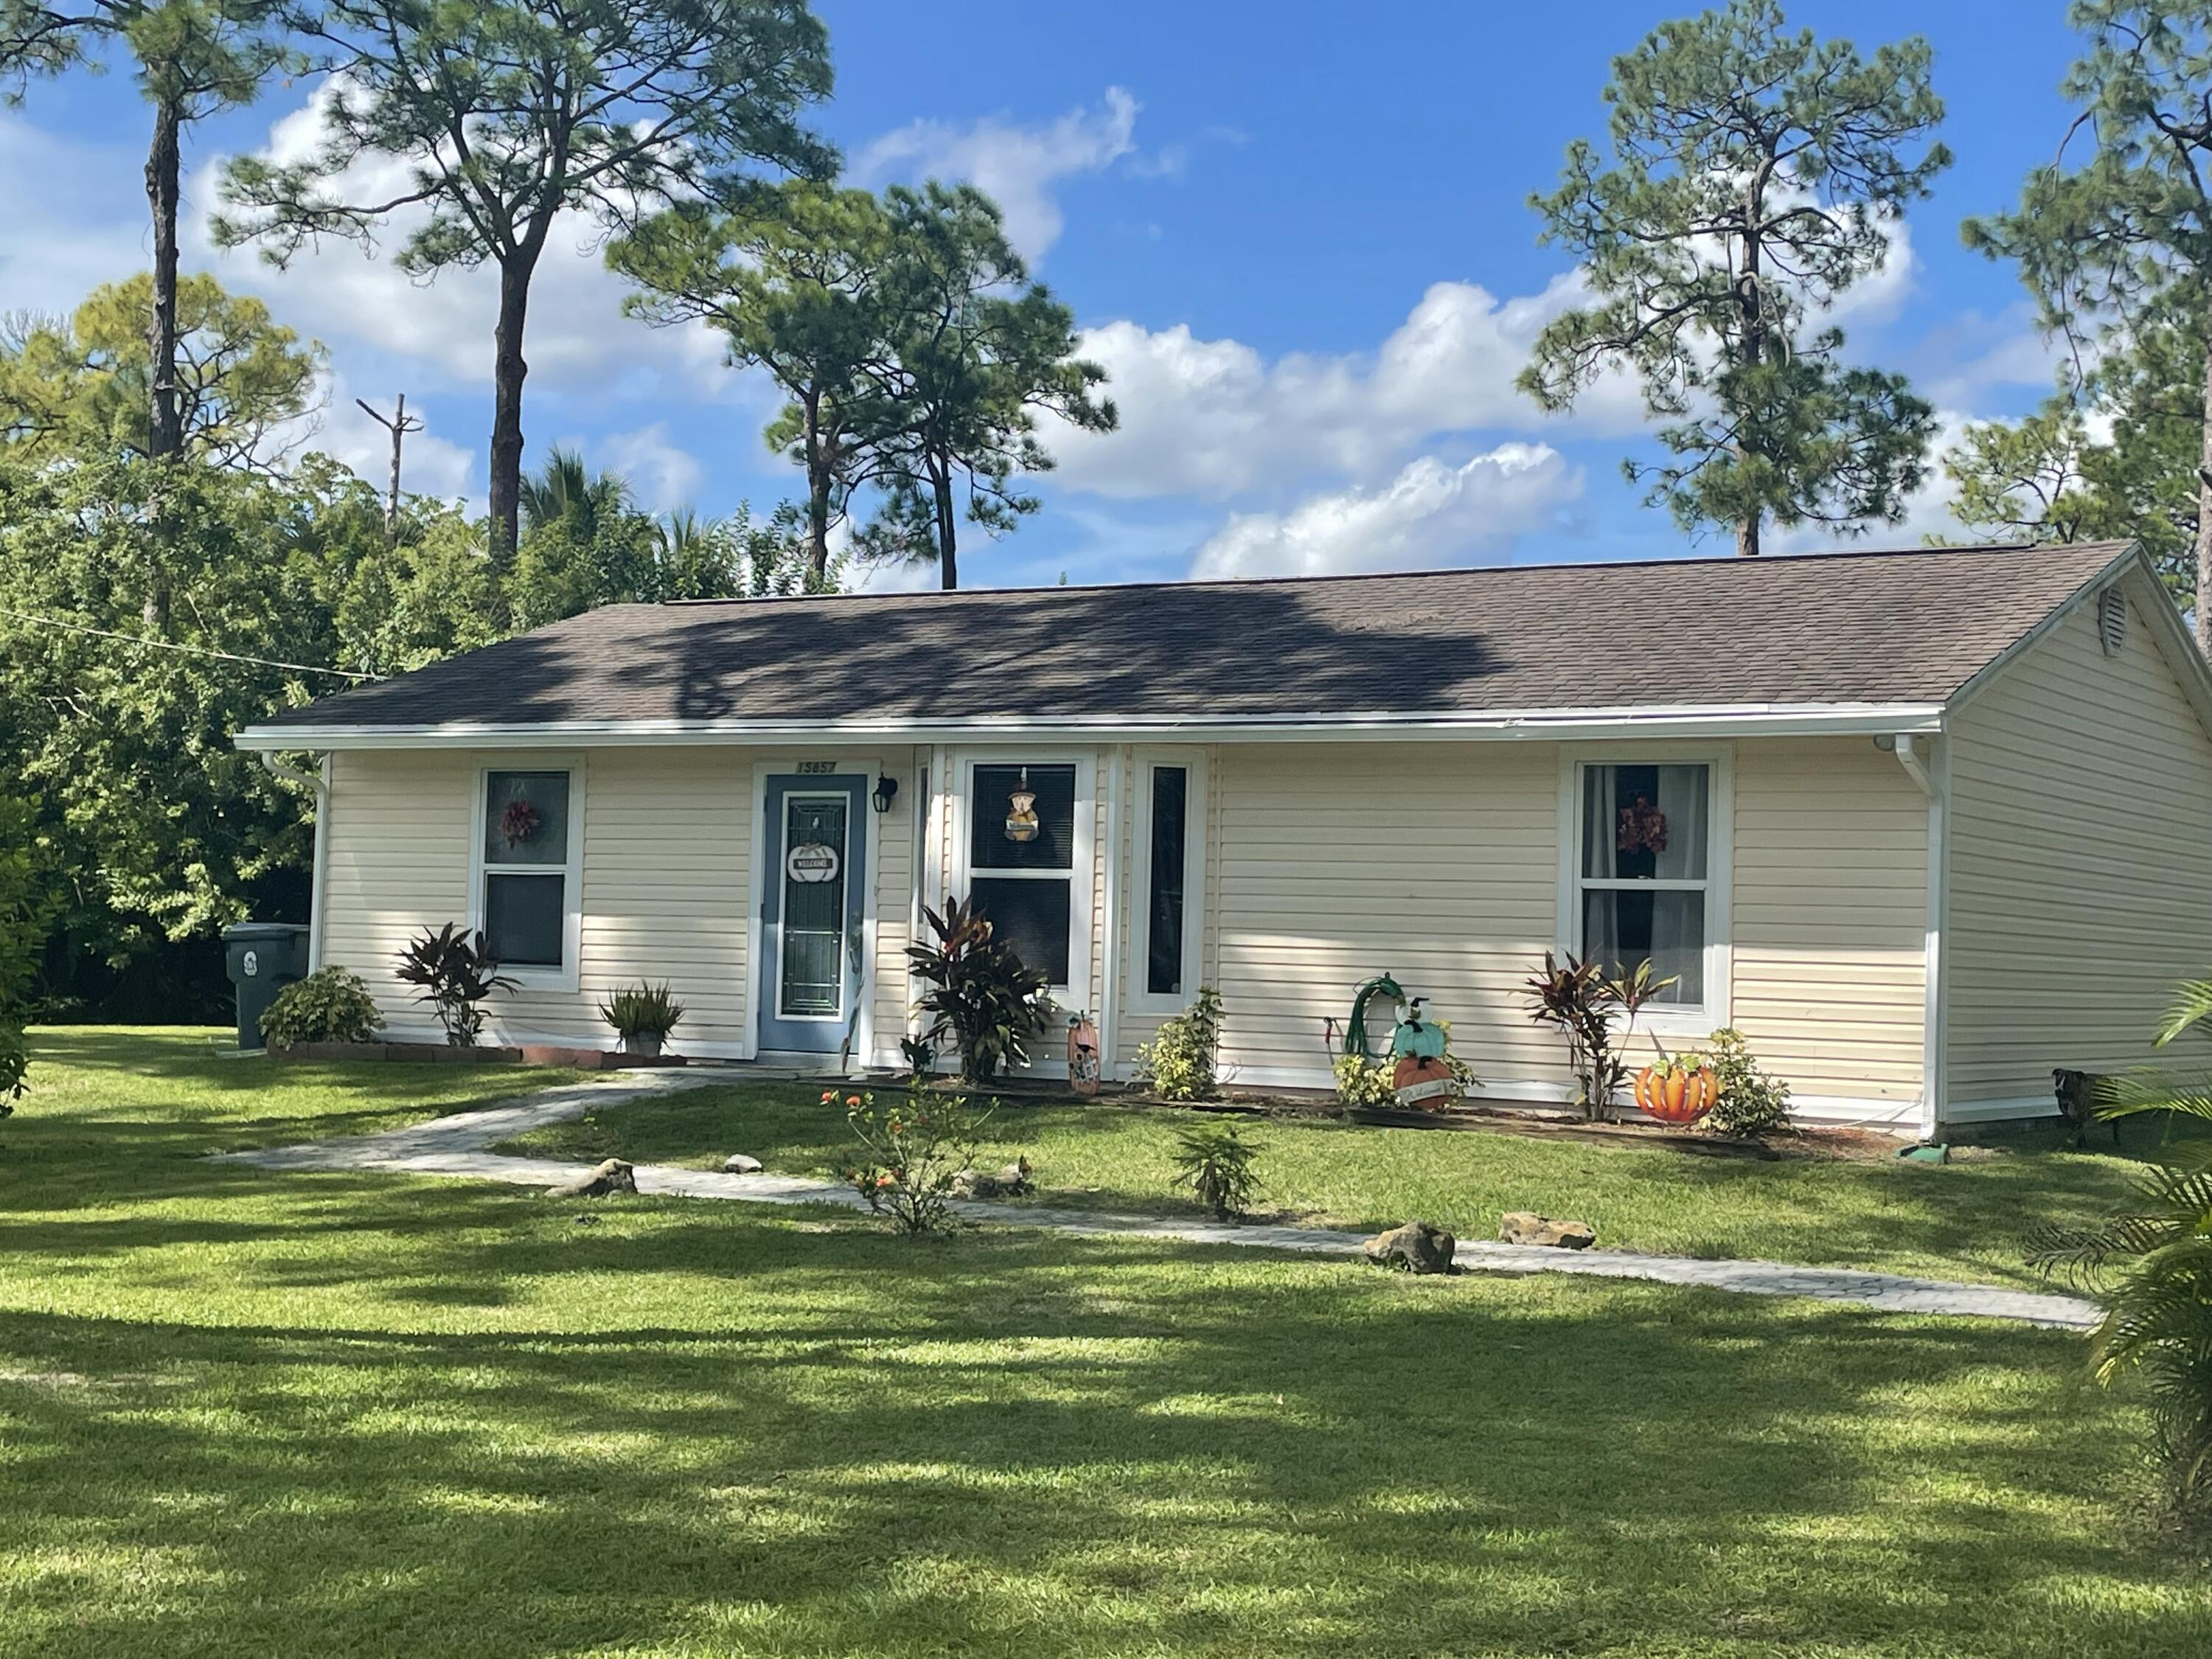 Home for sale in Unincorporated Loxahatchee Florida